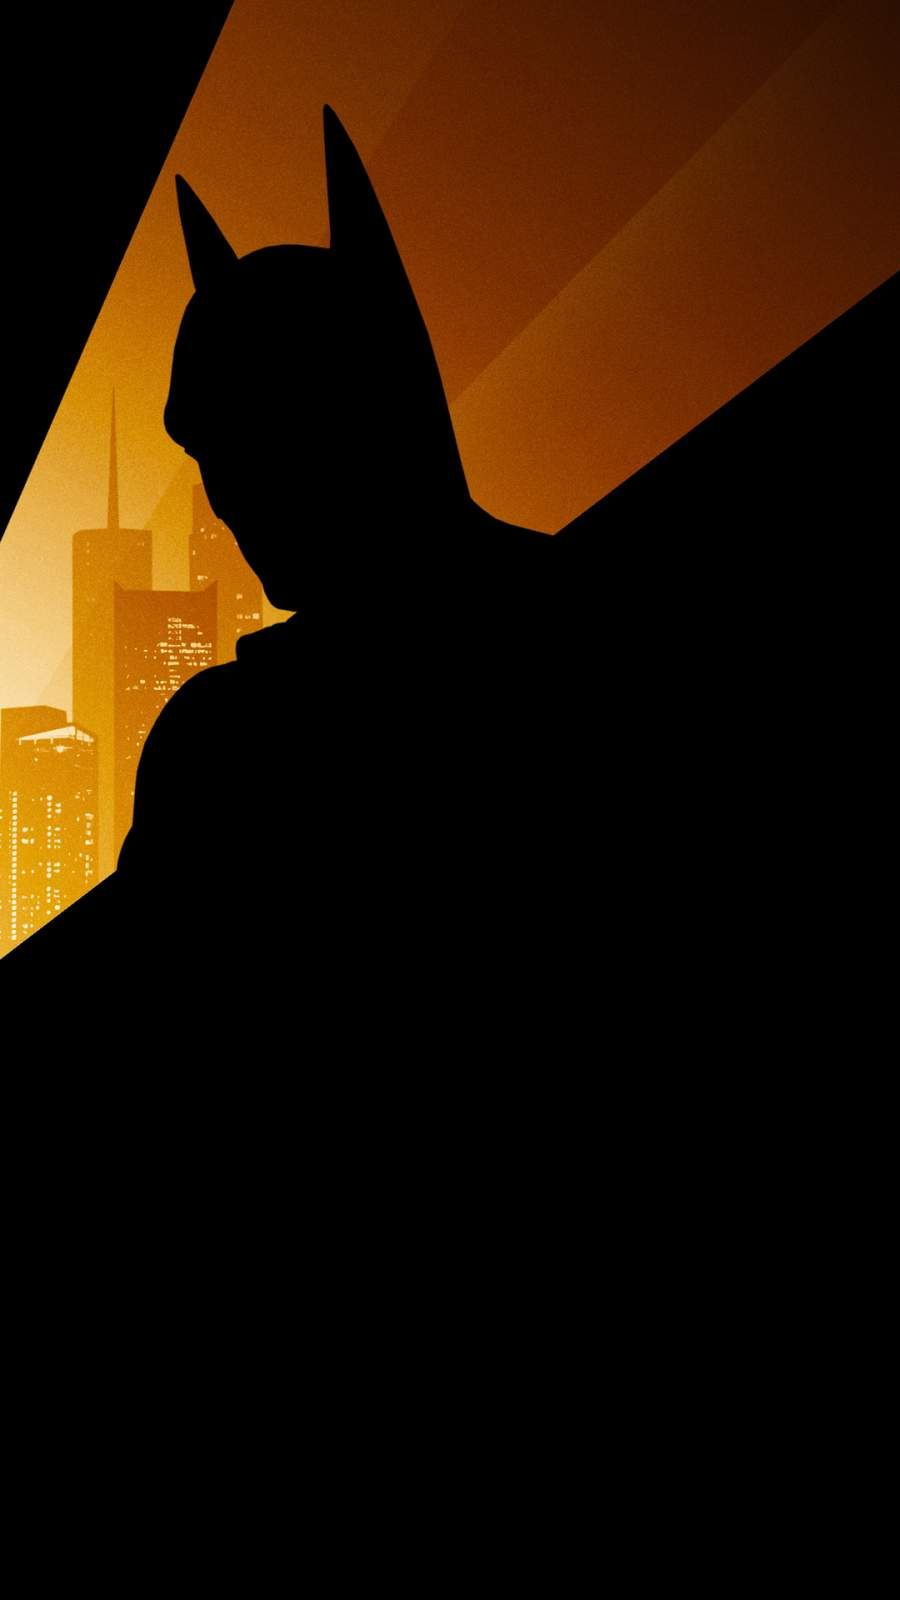 Batman Silhouette iPhone Wallpaper (2020)